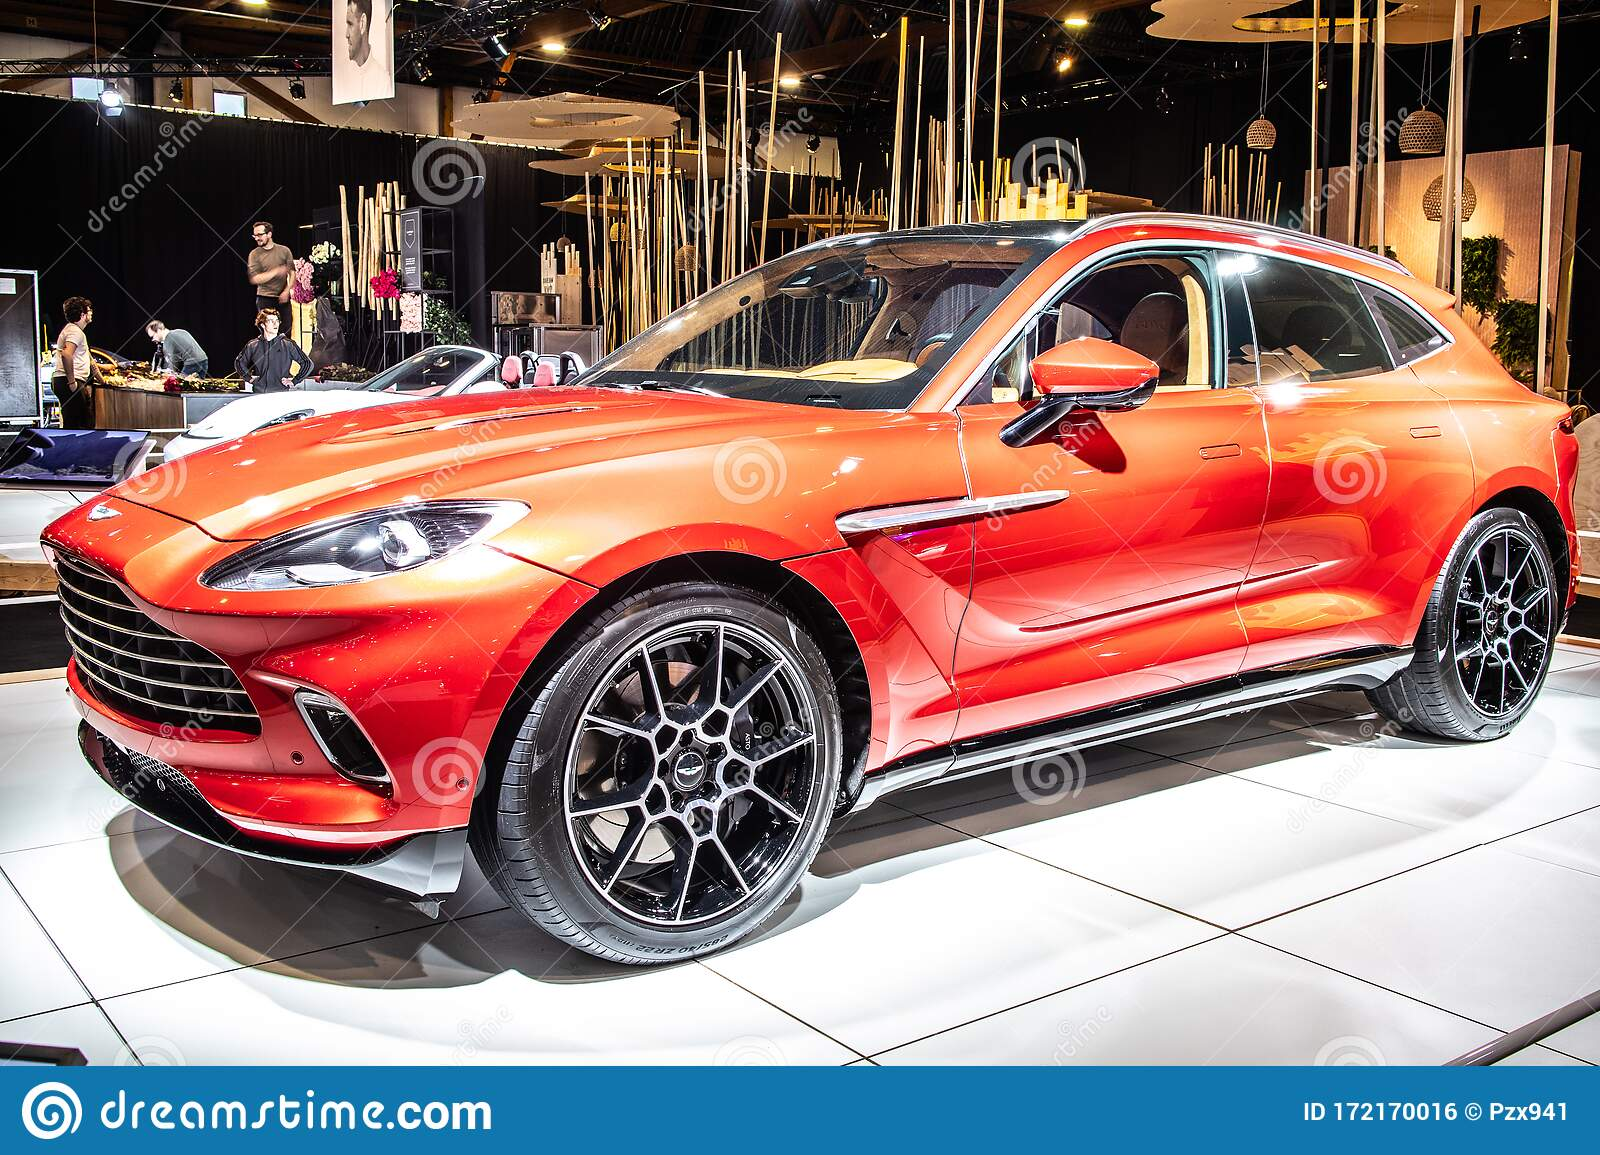 Aston Martin Dbx At Brussels Motor Show Dream Cars British All Wheel Drive Luxury Crossover Suv Produced By Aston Martin Editorial Photo Image Of Concept Brussels 172170016